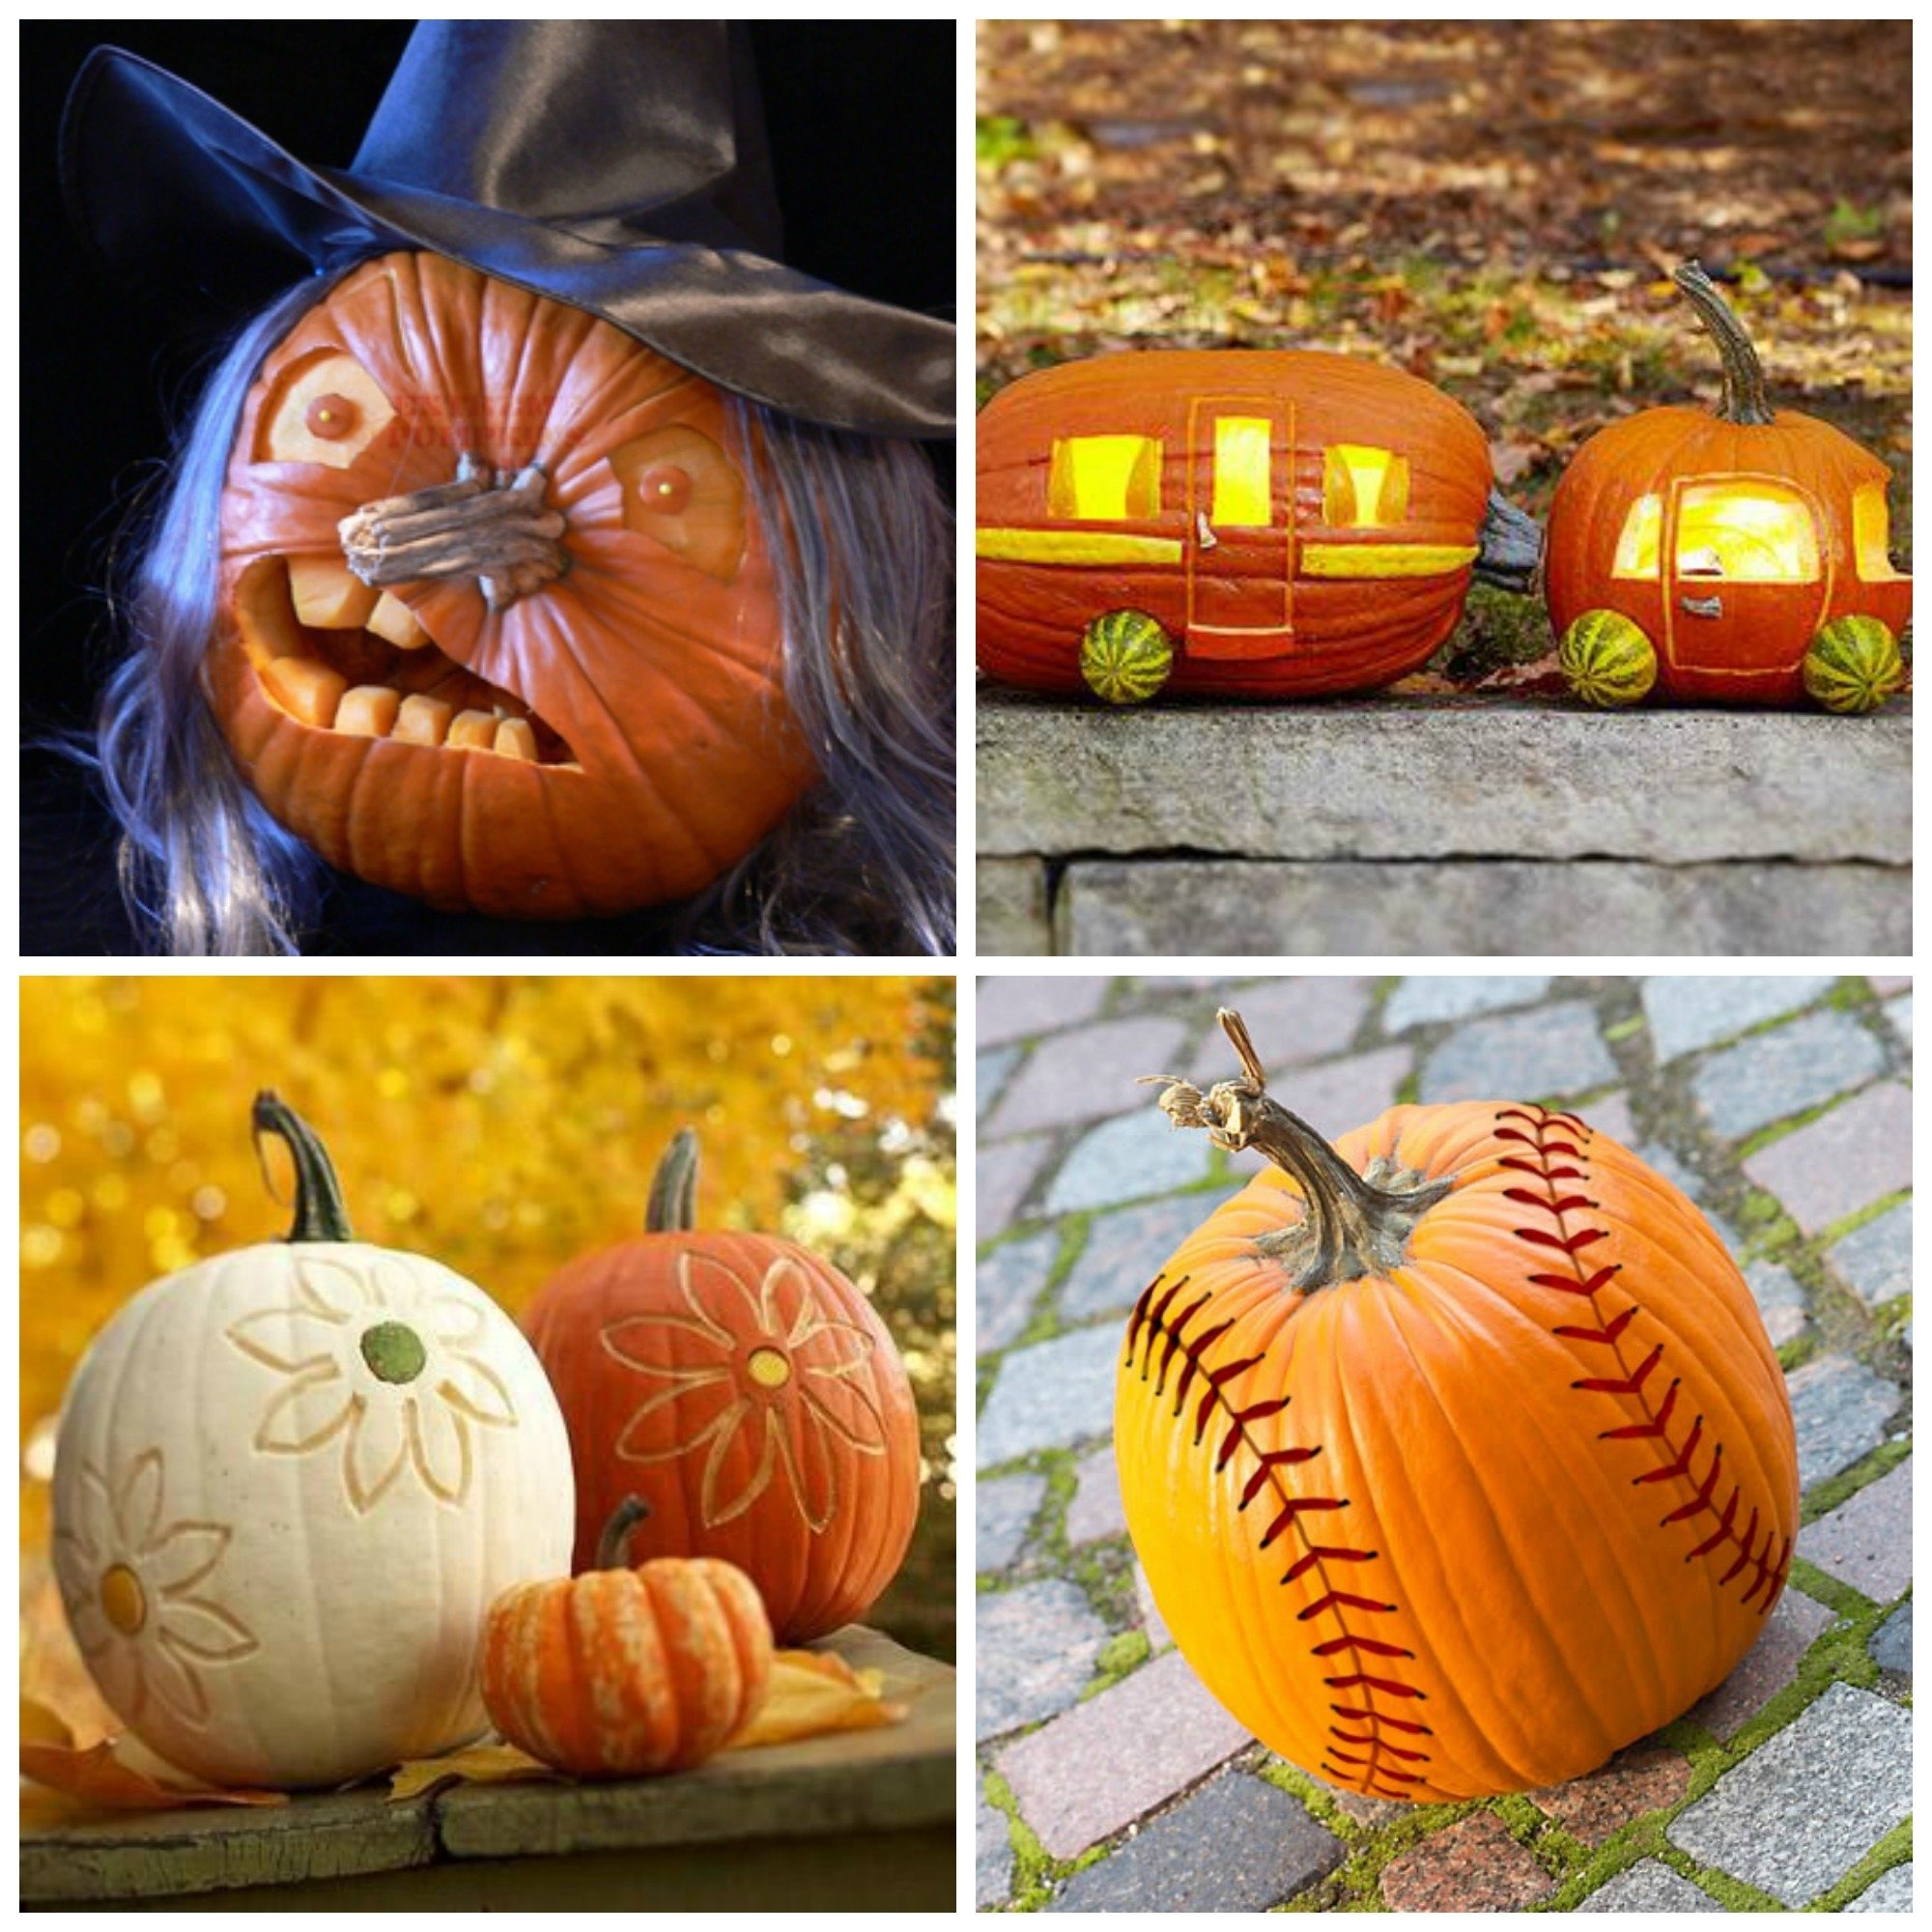 10 Beautiful Easy Pumpkin Decorating Ideas Without Carving Pumpkin pumpkin decorating ideas and my curated pumpkin roundup h20bungalow 1 2020